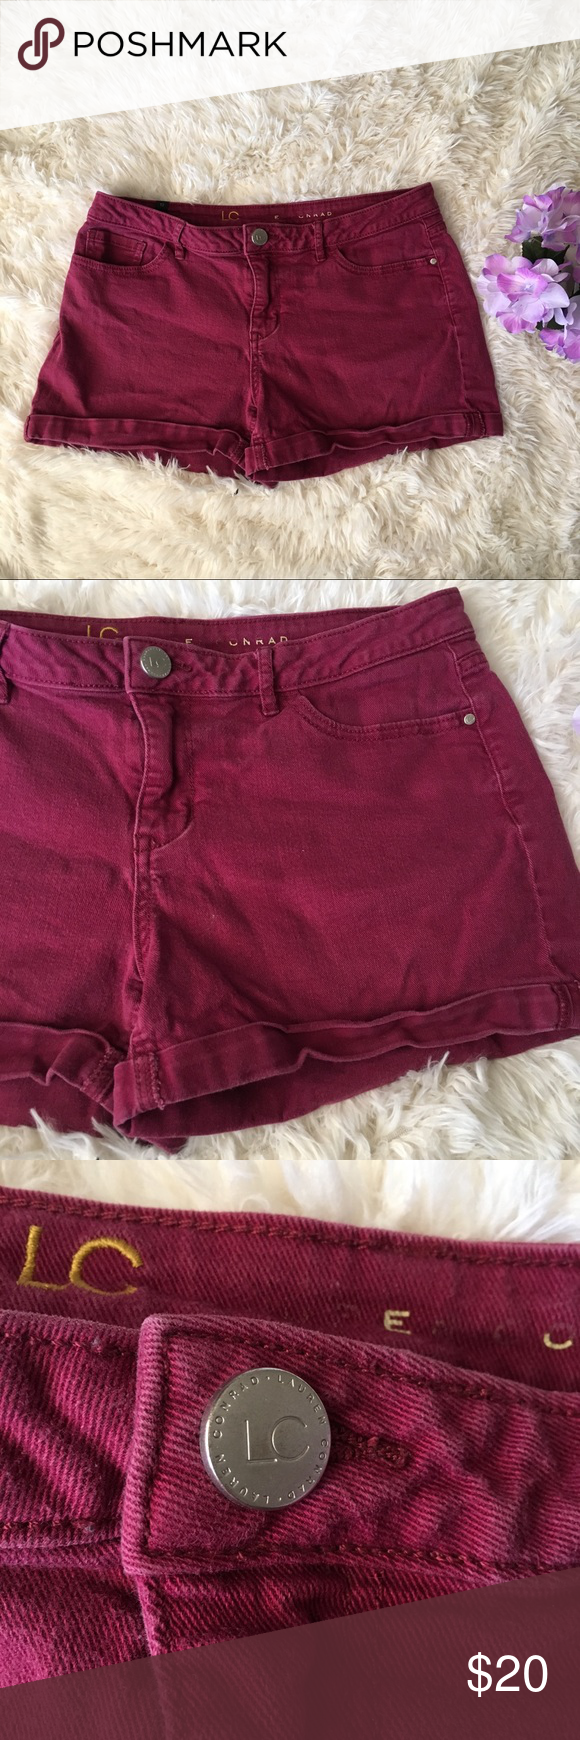 LC LAUREN CONRAD SHORTS   Celebrity casual outfits, Womens